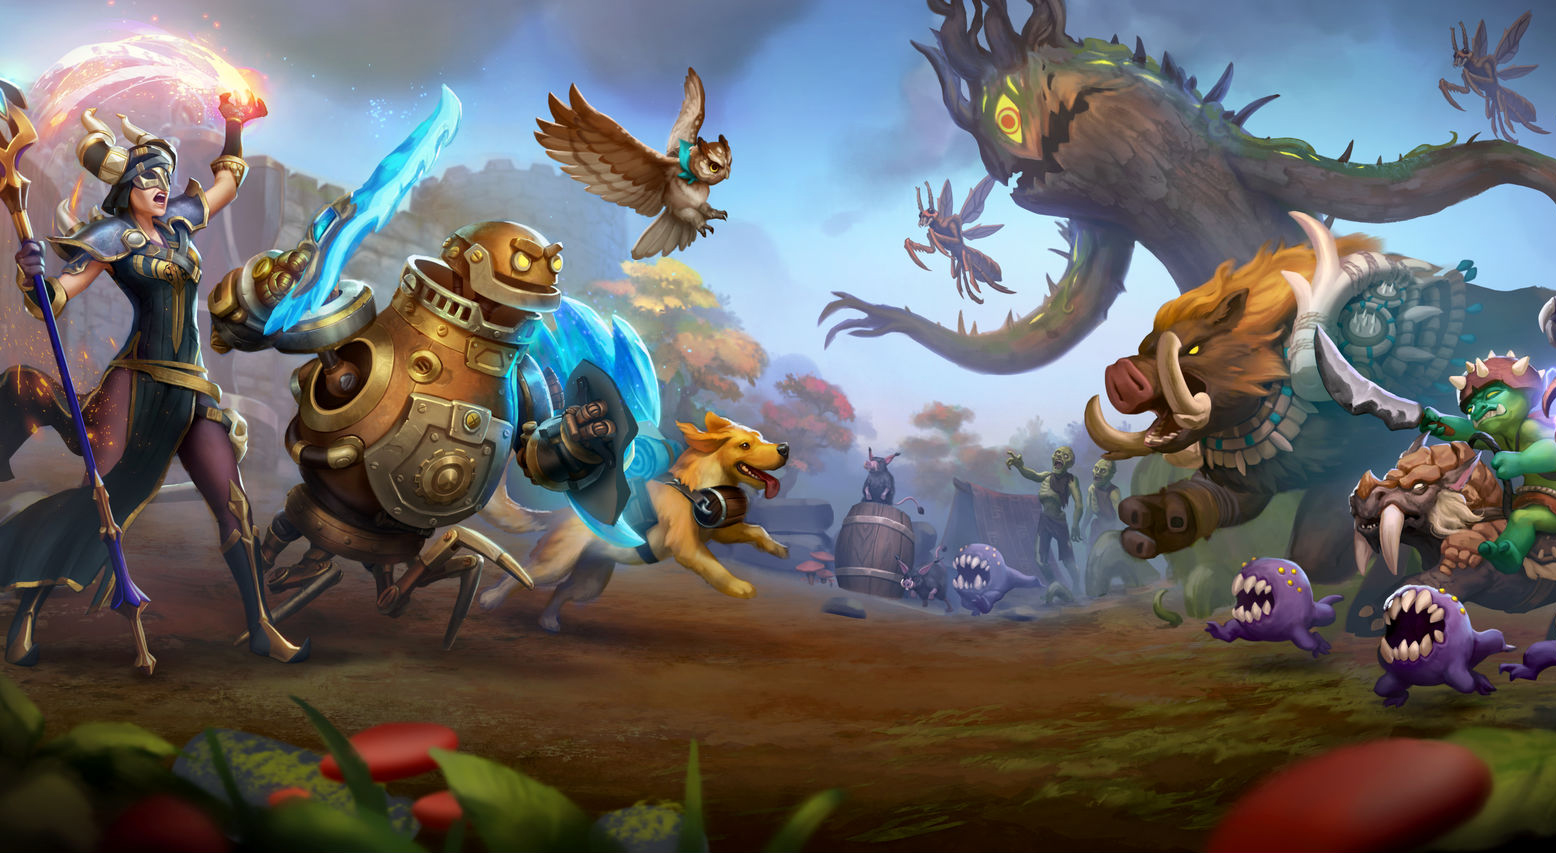 Torchlight III arrives for PC and consoles next month